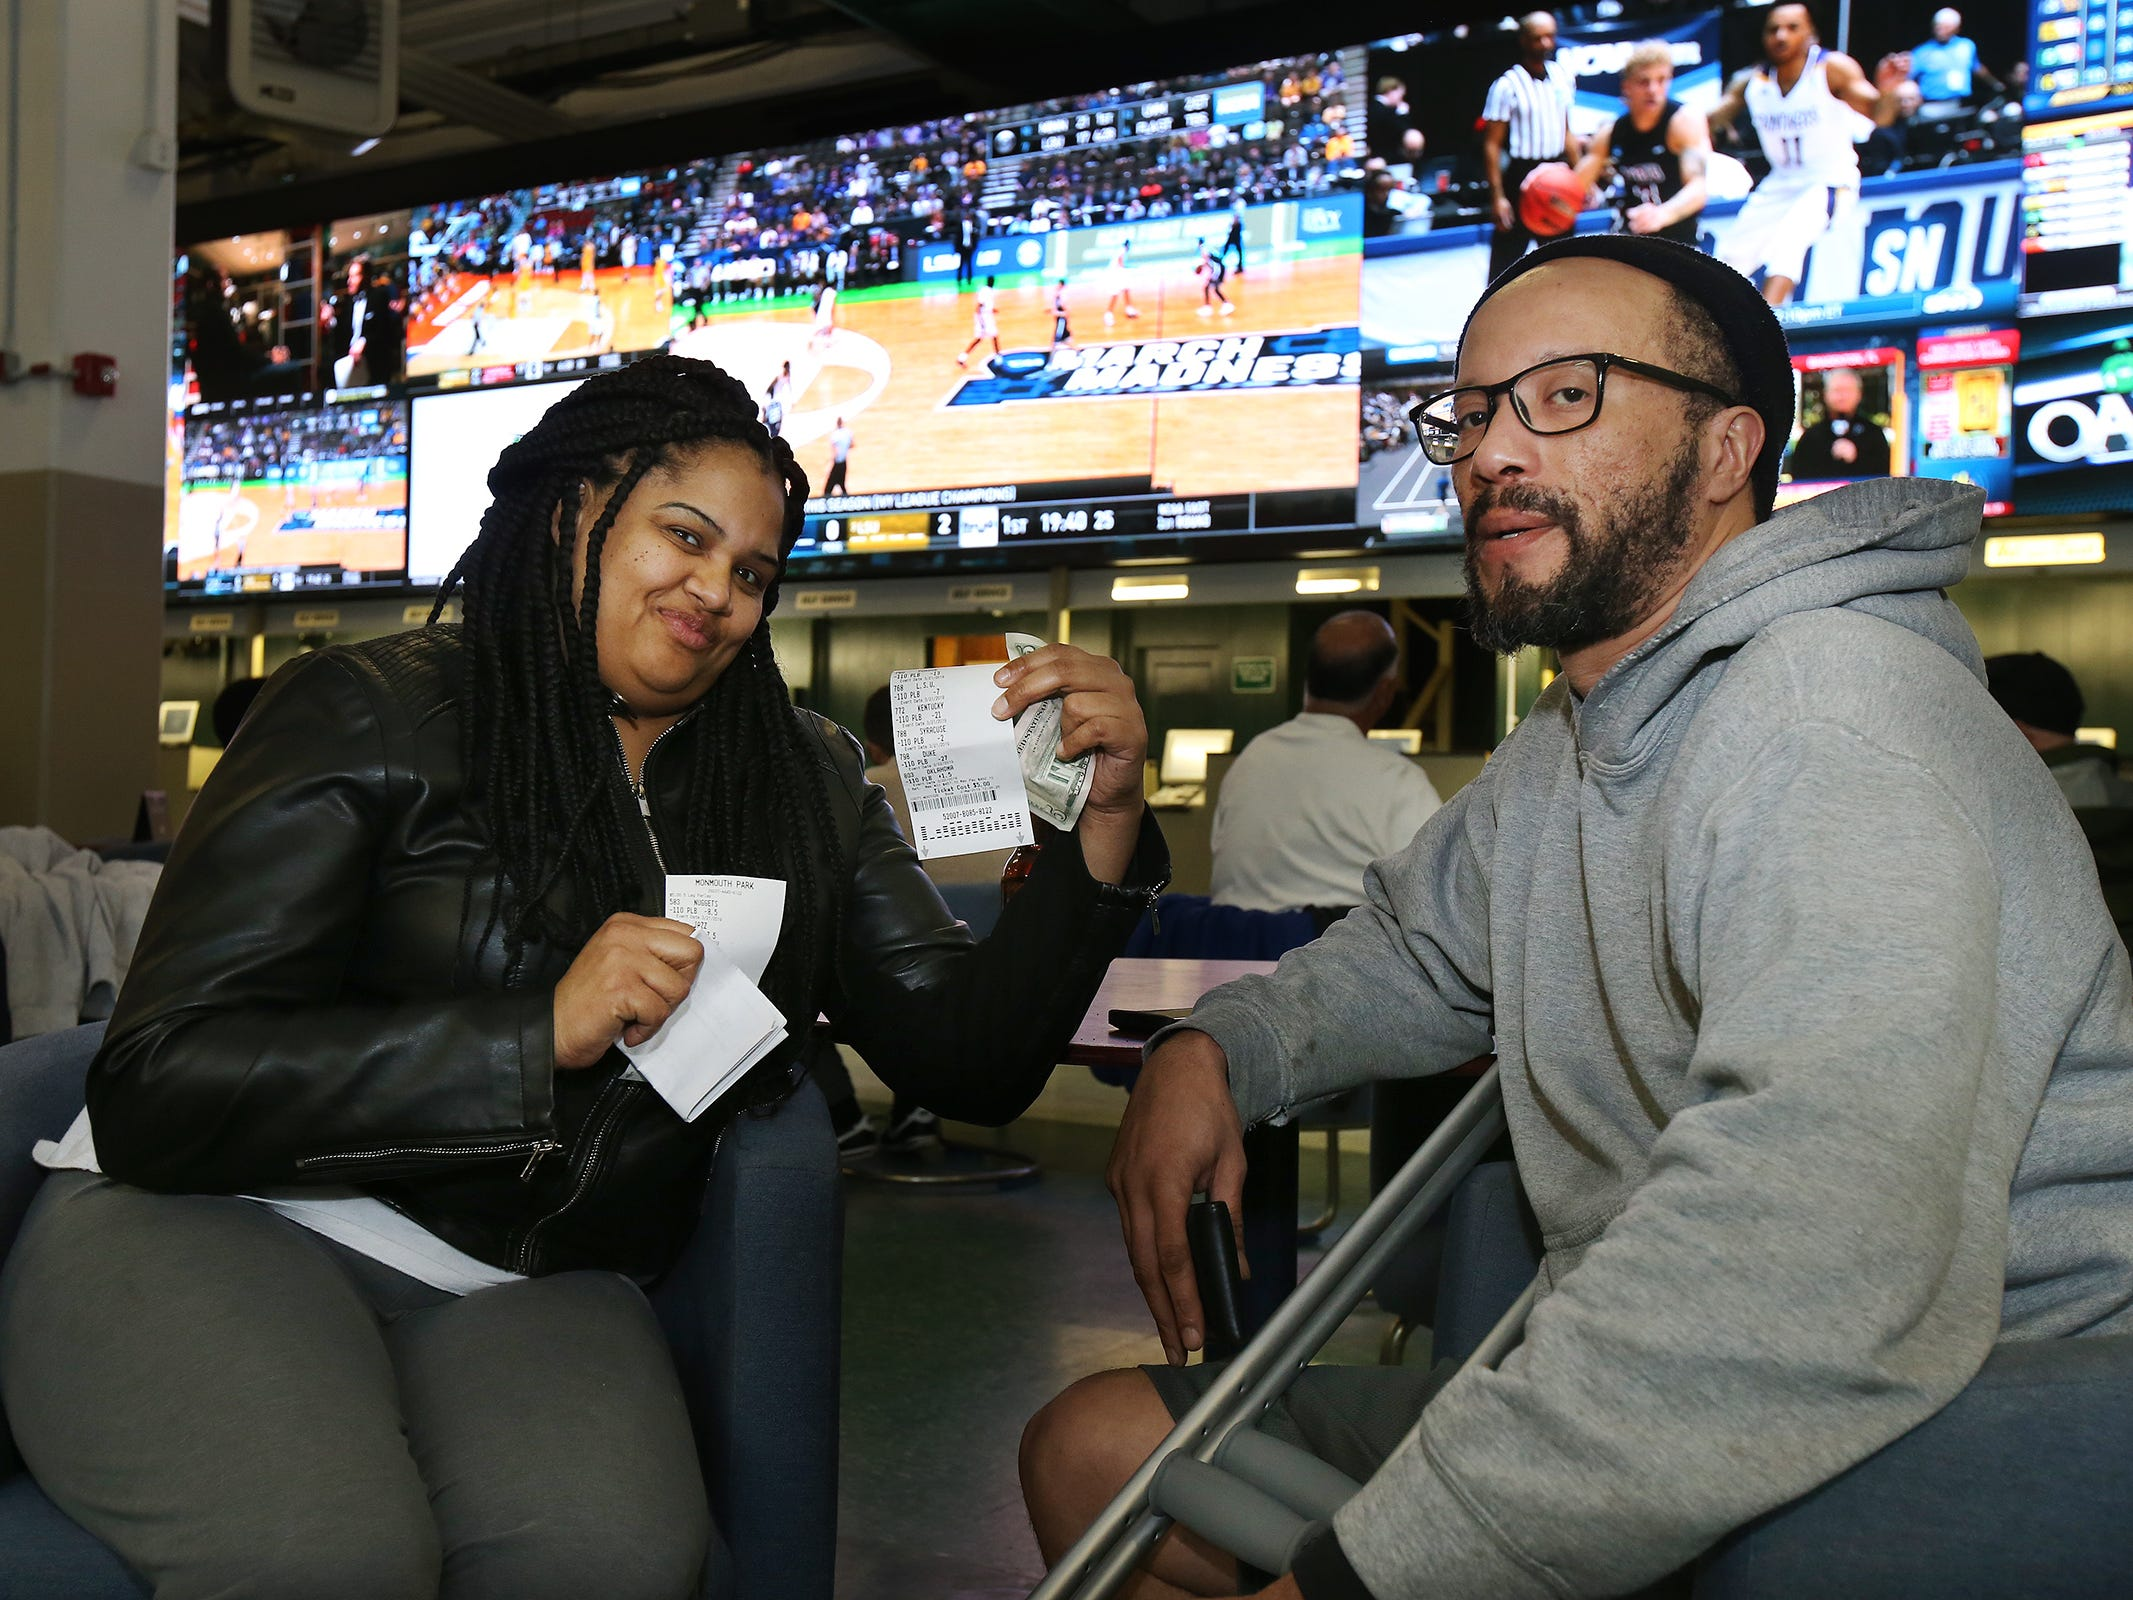 Malika and A.J. Carey of Neptune display their betting slips during March Madness, the NCAA men's college basketball tournament, at Monmouth Park's William Hill Sports Book in Oceanport, NJ Thursday March 21, 2019.